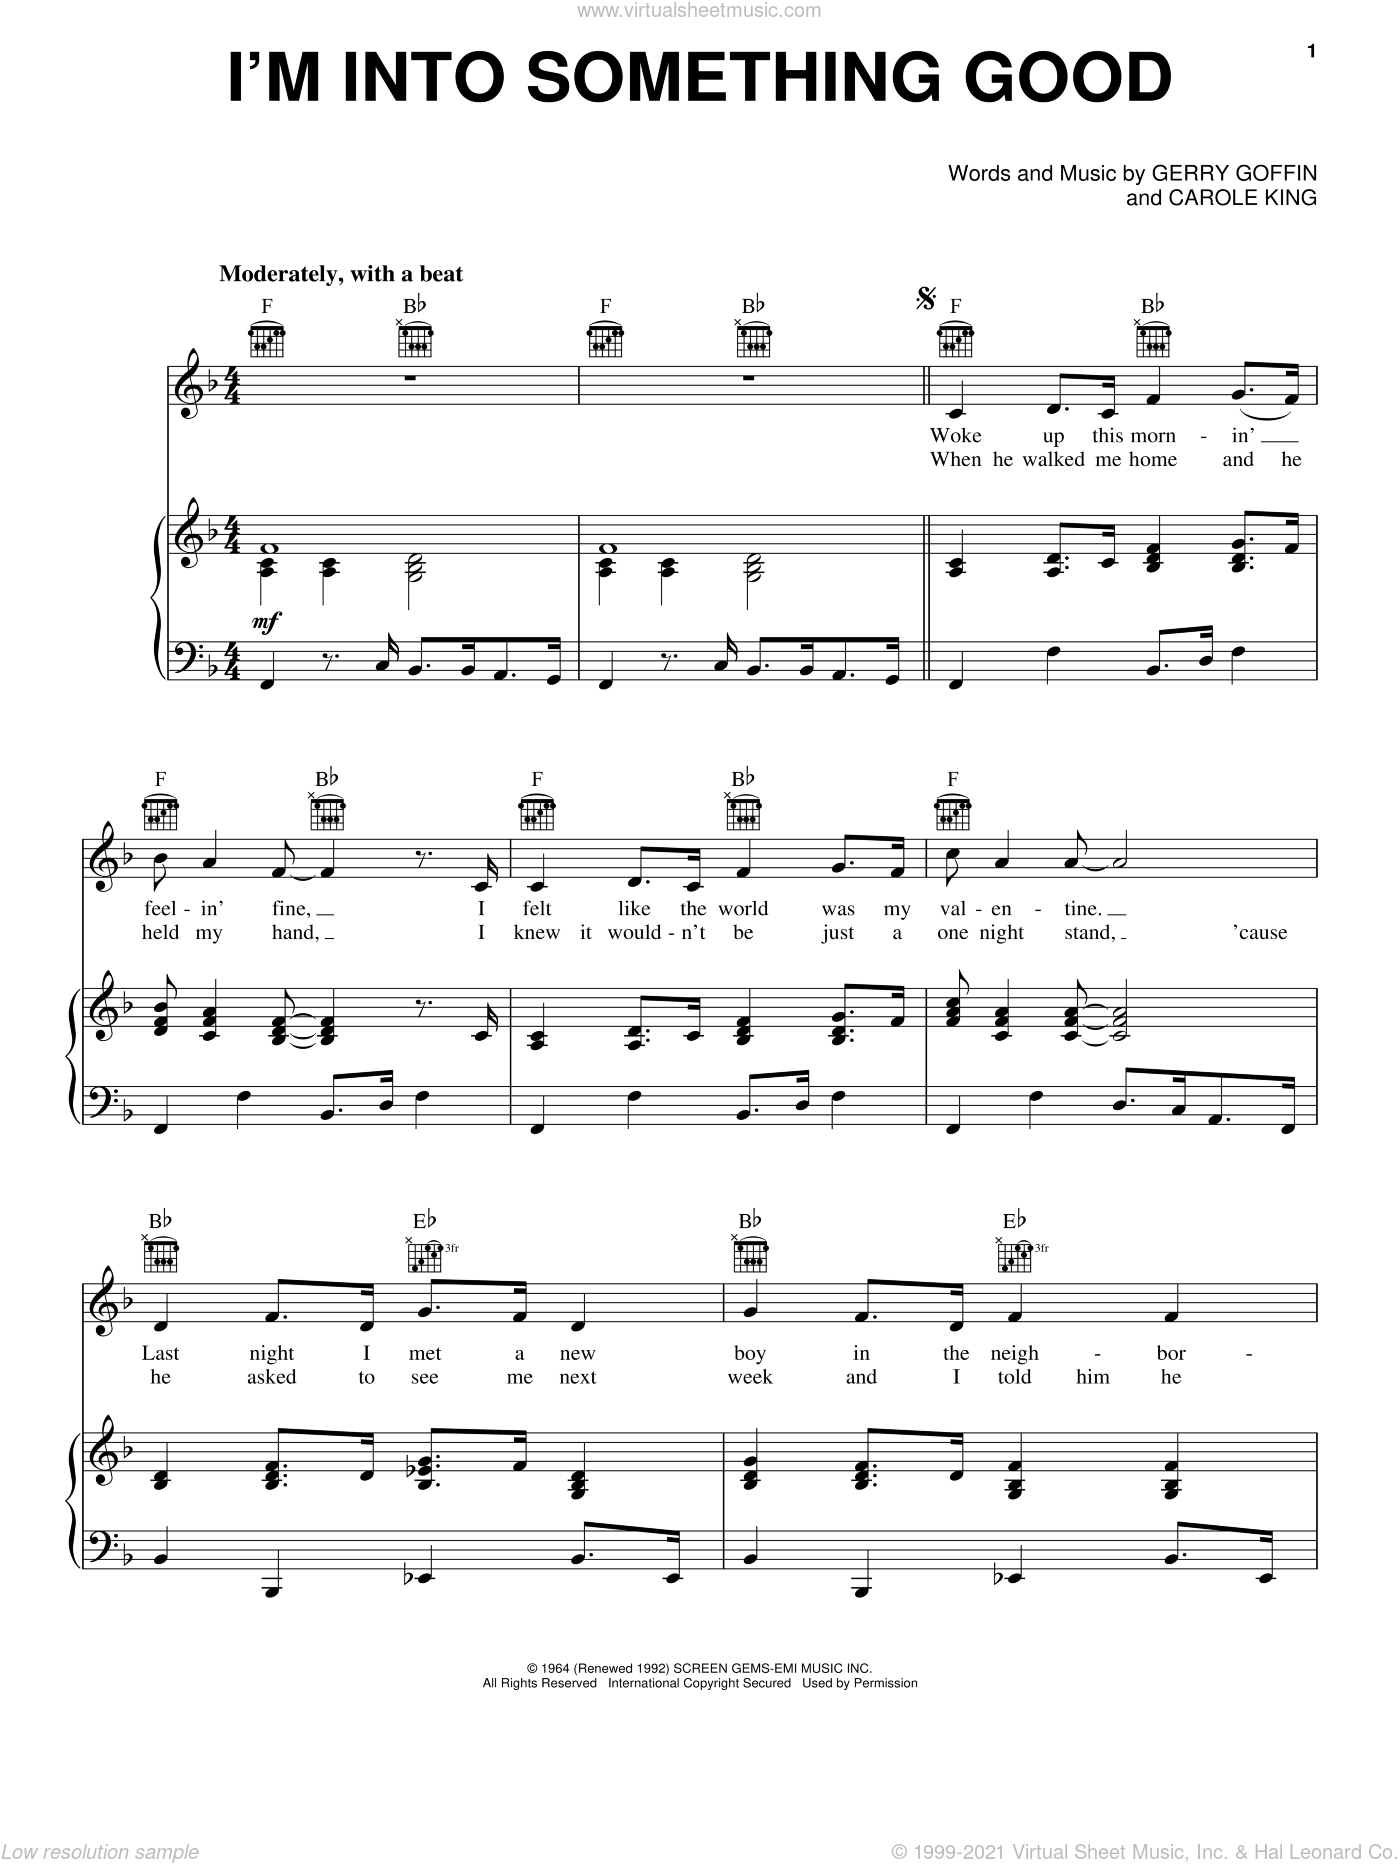 I'm Into Something Good sheet music for voice, piano or guitar by Herman's Hermits, Carole King and Gerry Goffin, intermediate skill level